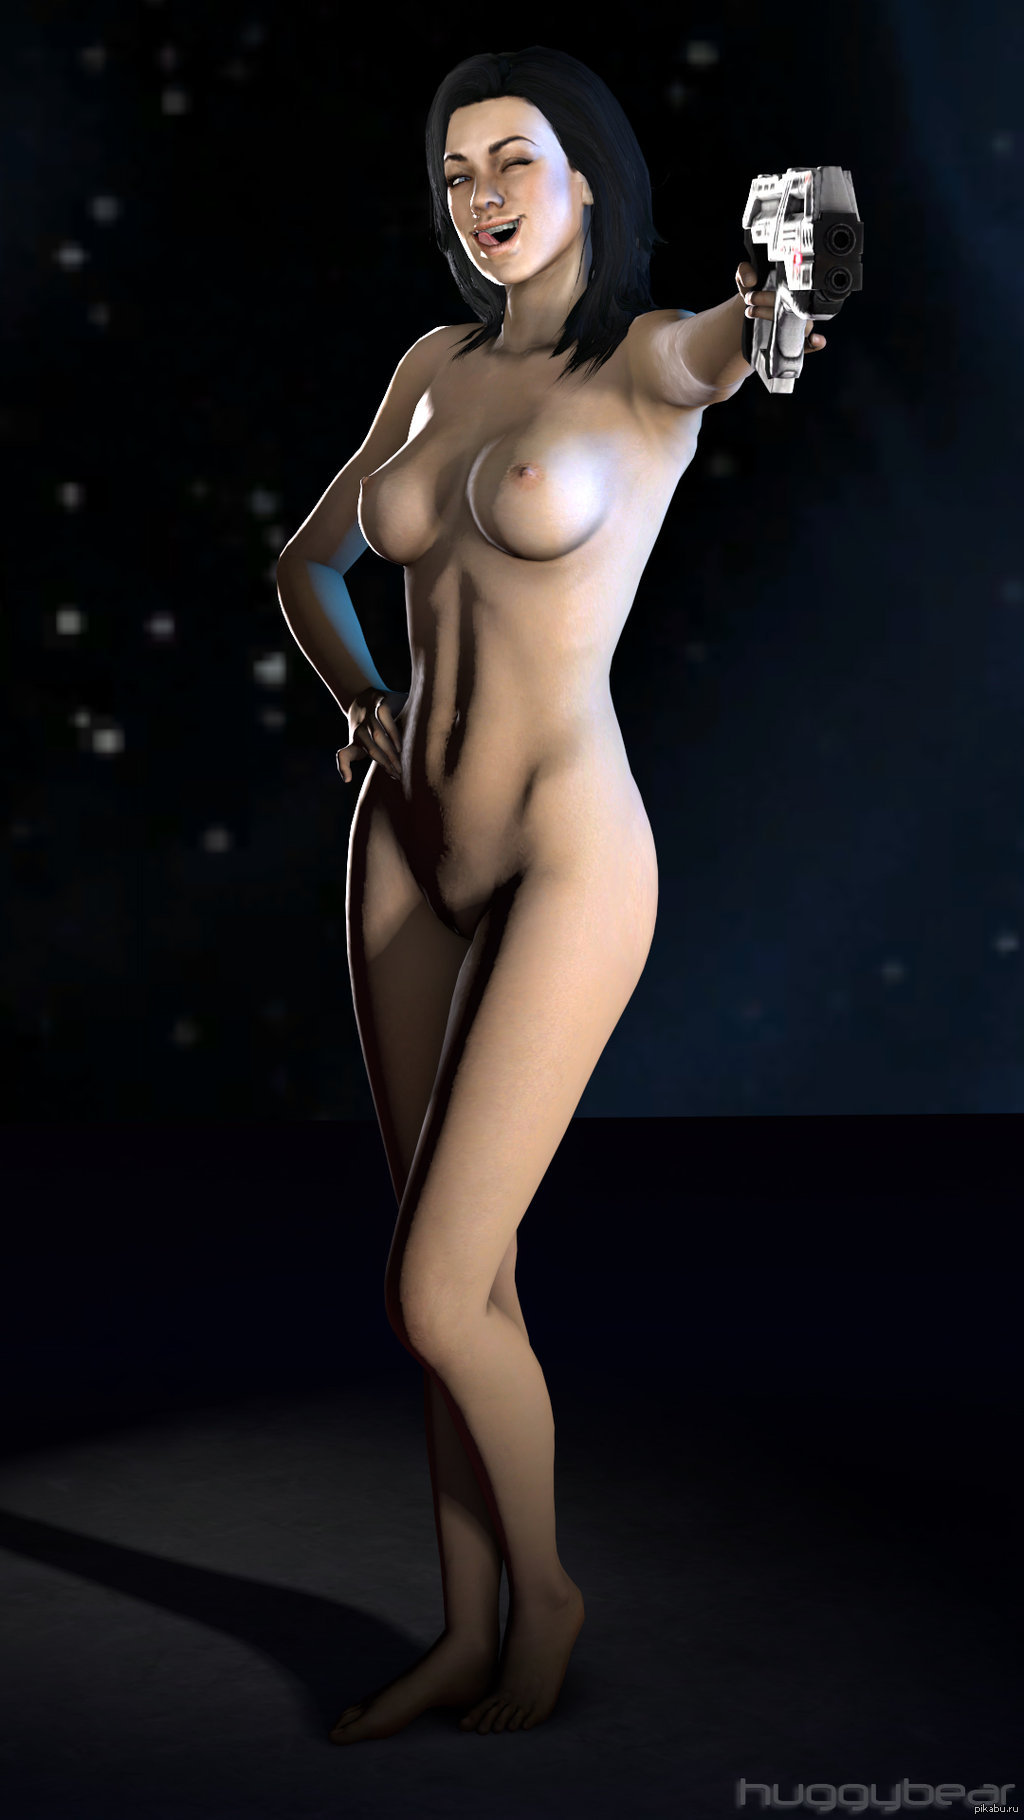 Nude miranda from mass effect hardcore photos